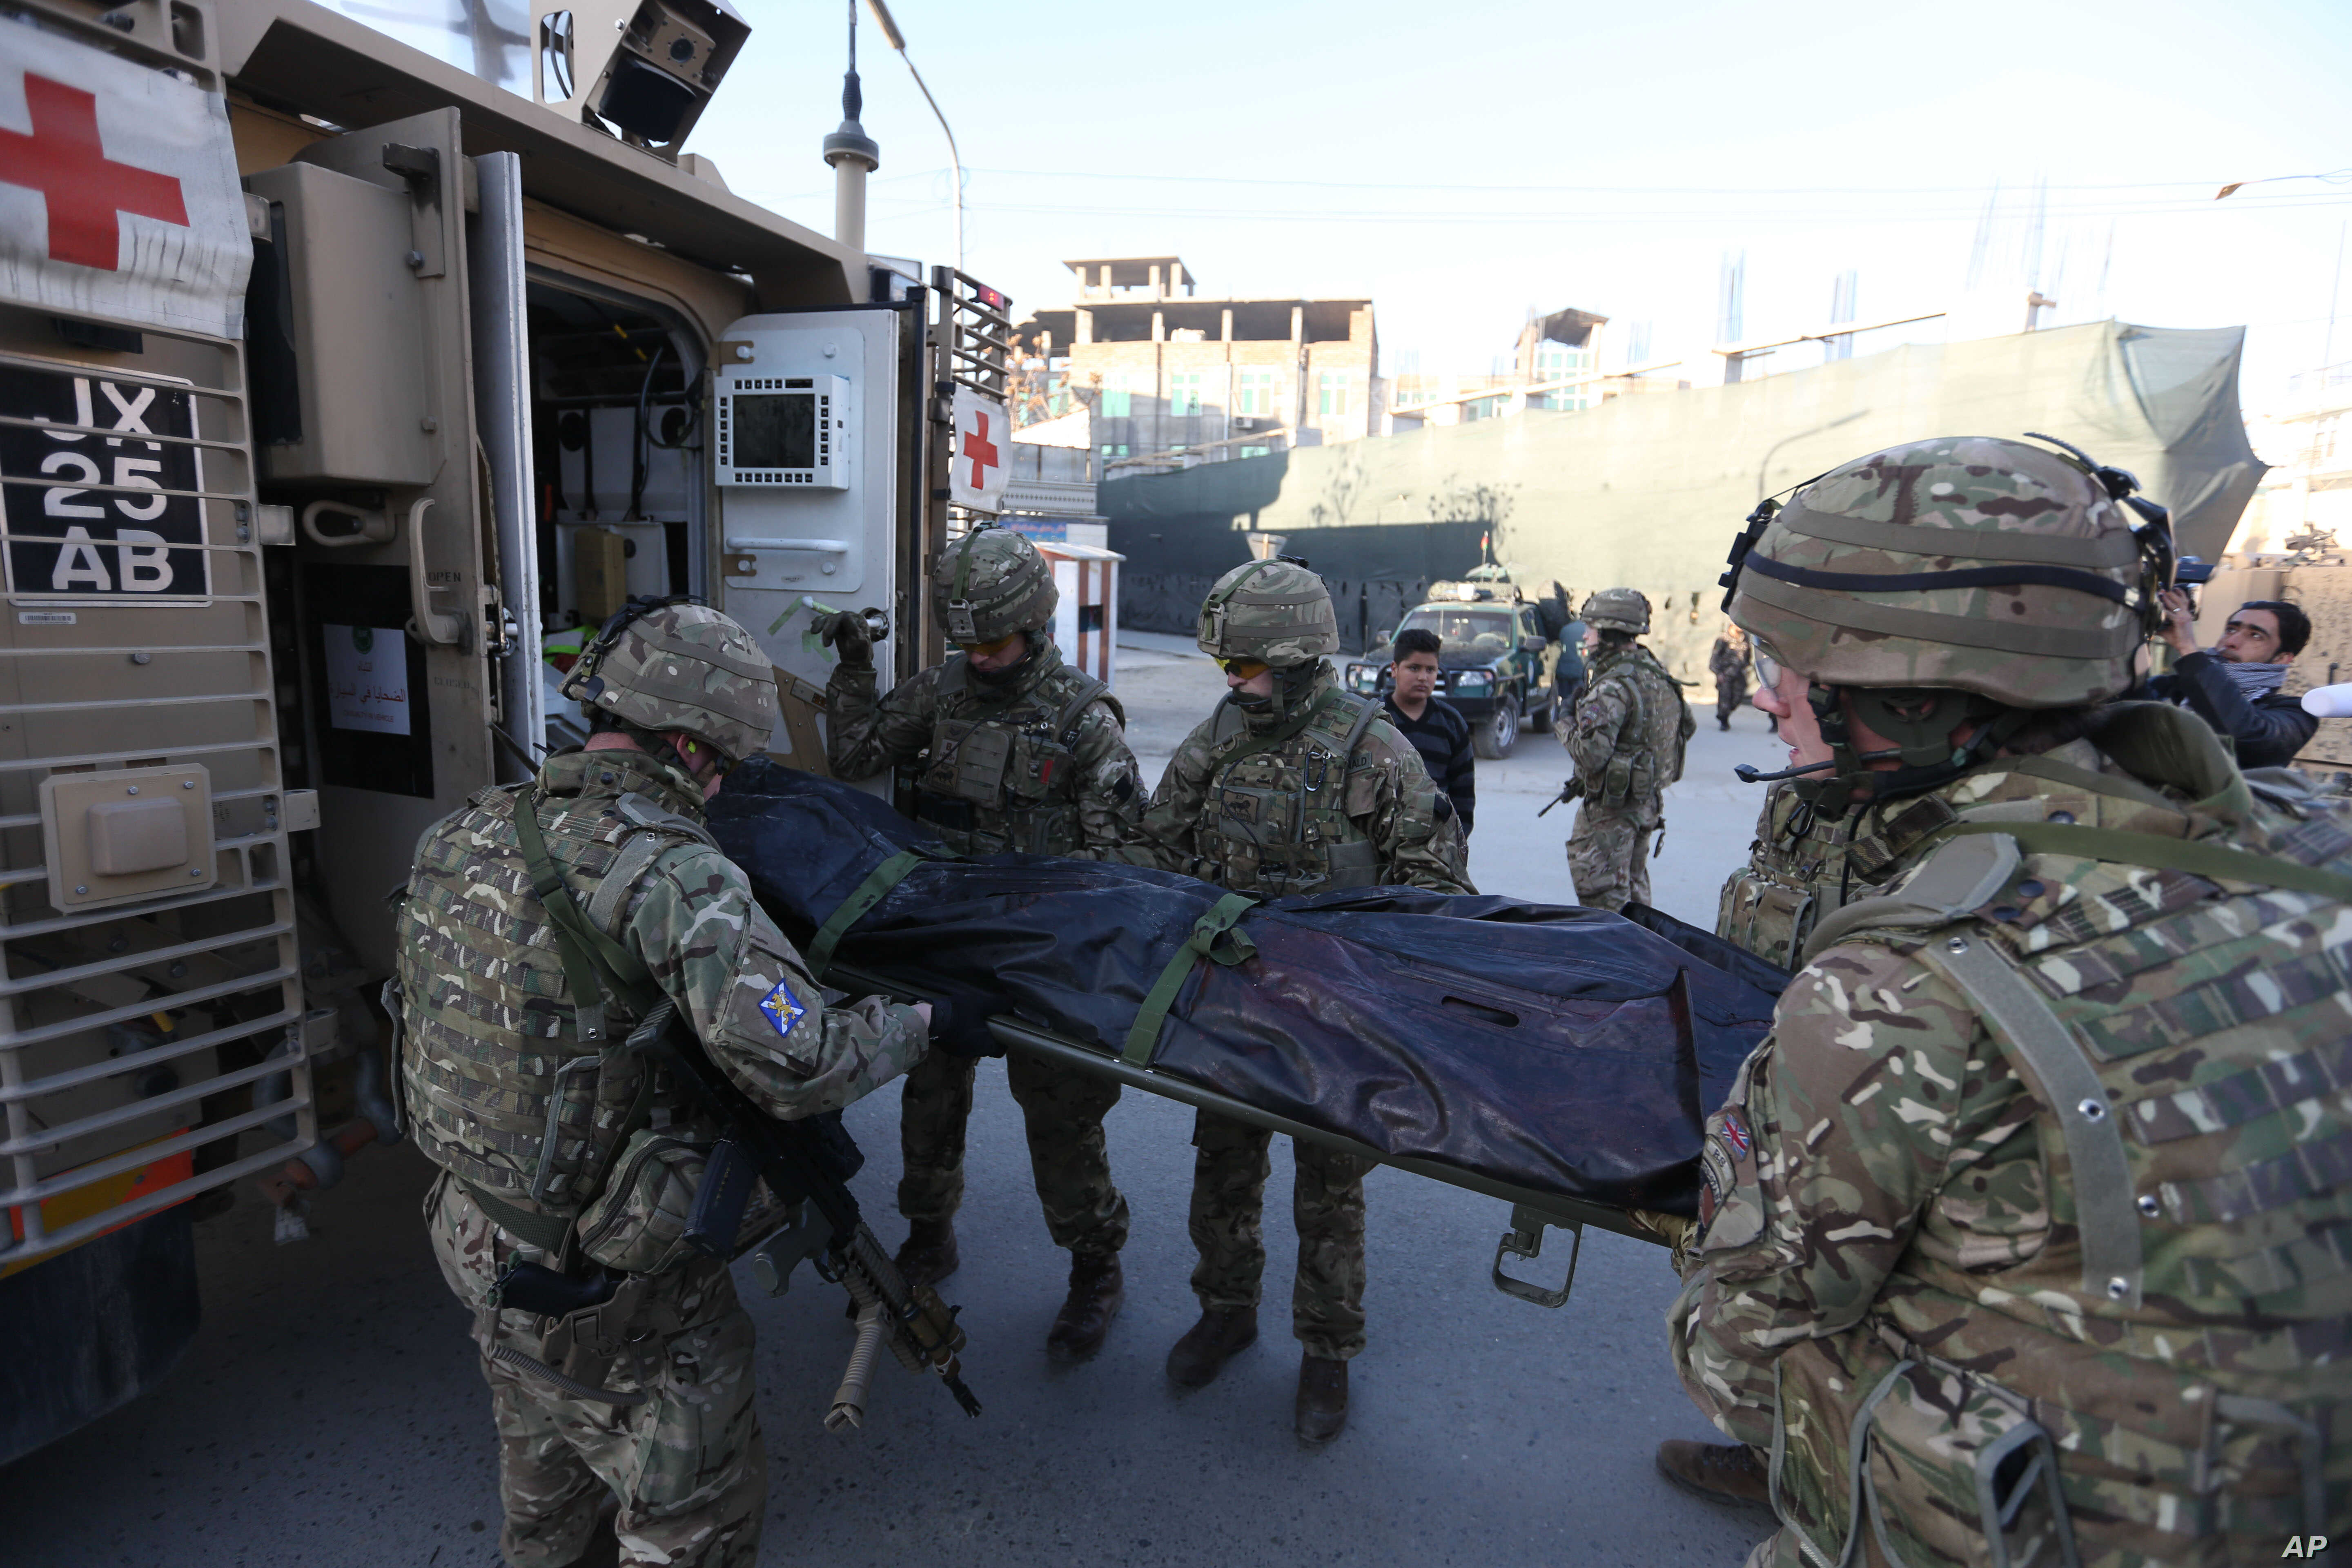 British soldiers carry the dead body of a victim in an attack near Spanish Embassy in Kabul, Afghanistan, Dec. 12, 2015.